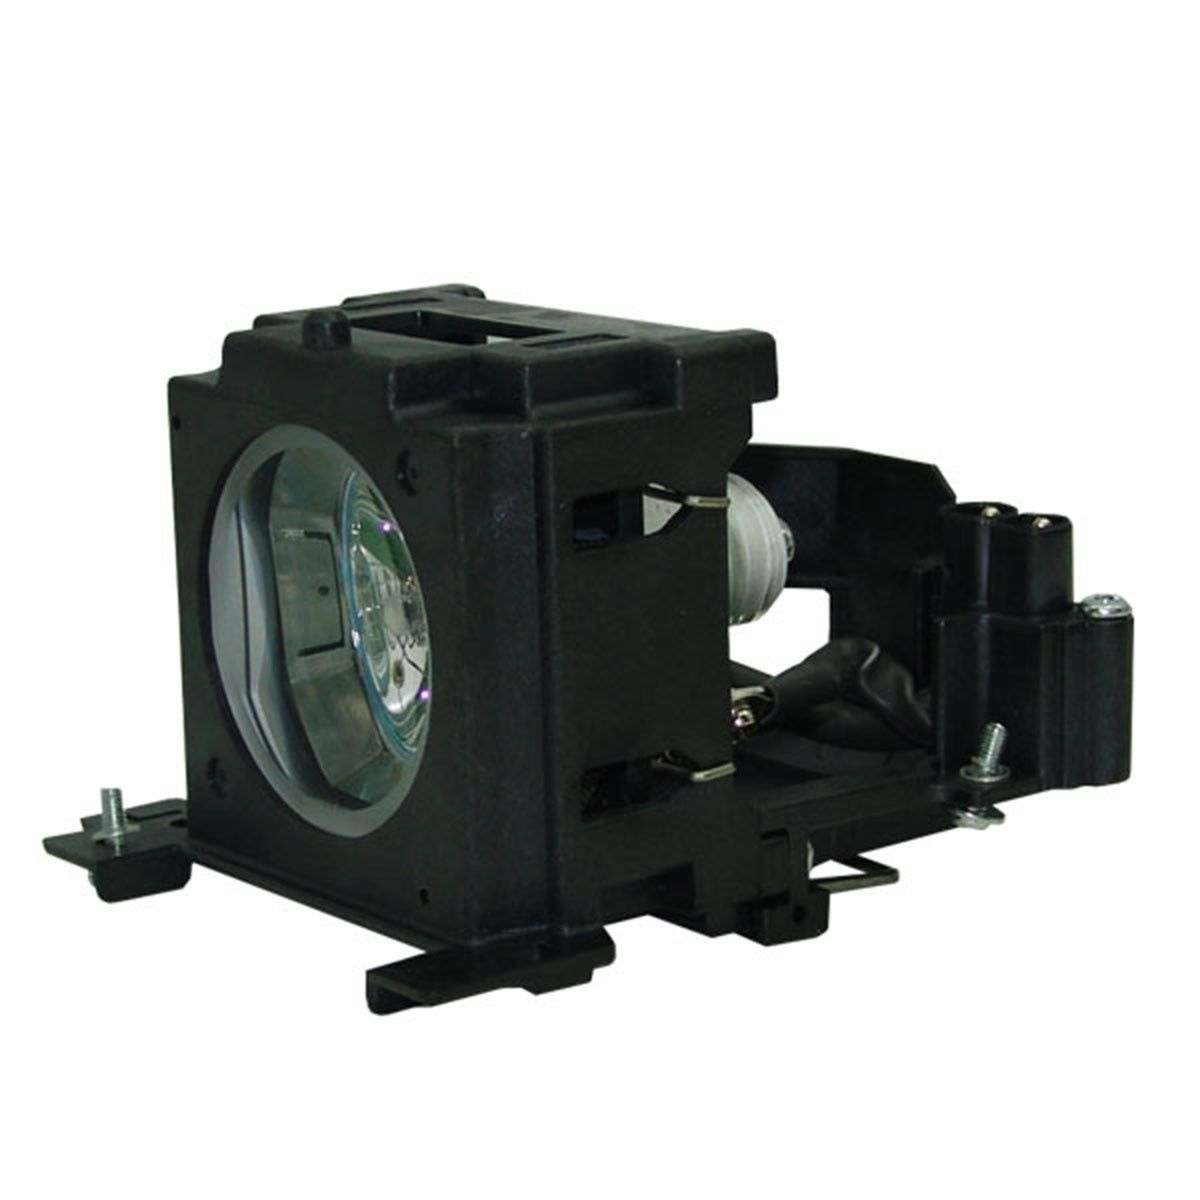 Projector Lamp Bulb DT00757 DT-00757 for HITACHI CP-X251 CP-X256 ED-X10 ED-X1092 ED-X12 ED-X15 with housing projector lamp with housing dt00911 for hitachi cp x450 cp xw410 ed x31 ed x33 hcp 6680x hcp 900x